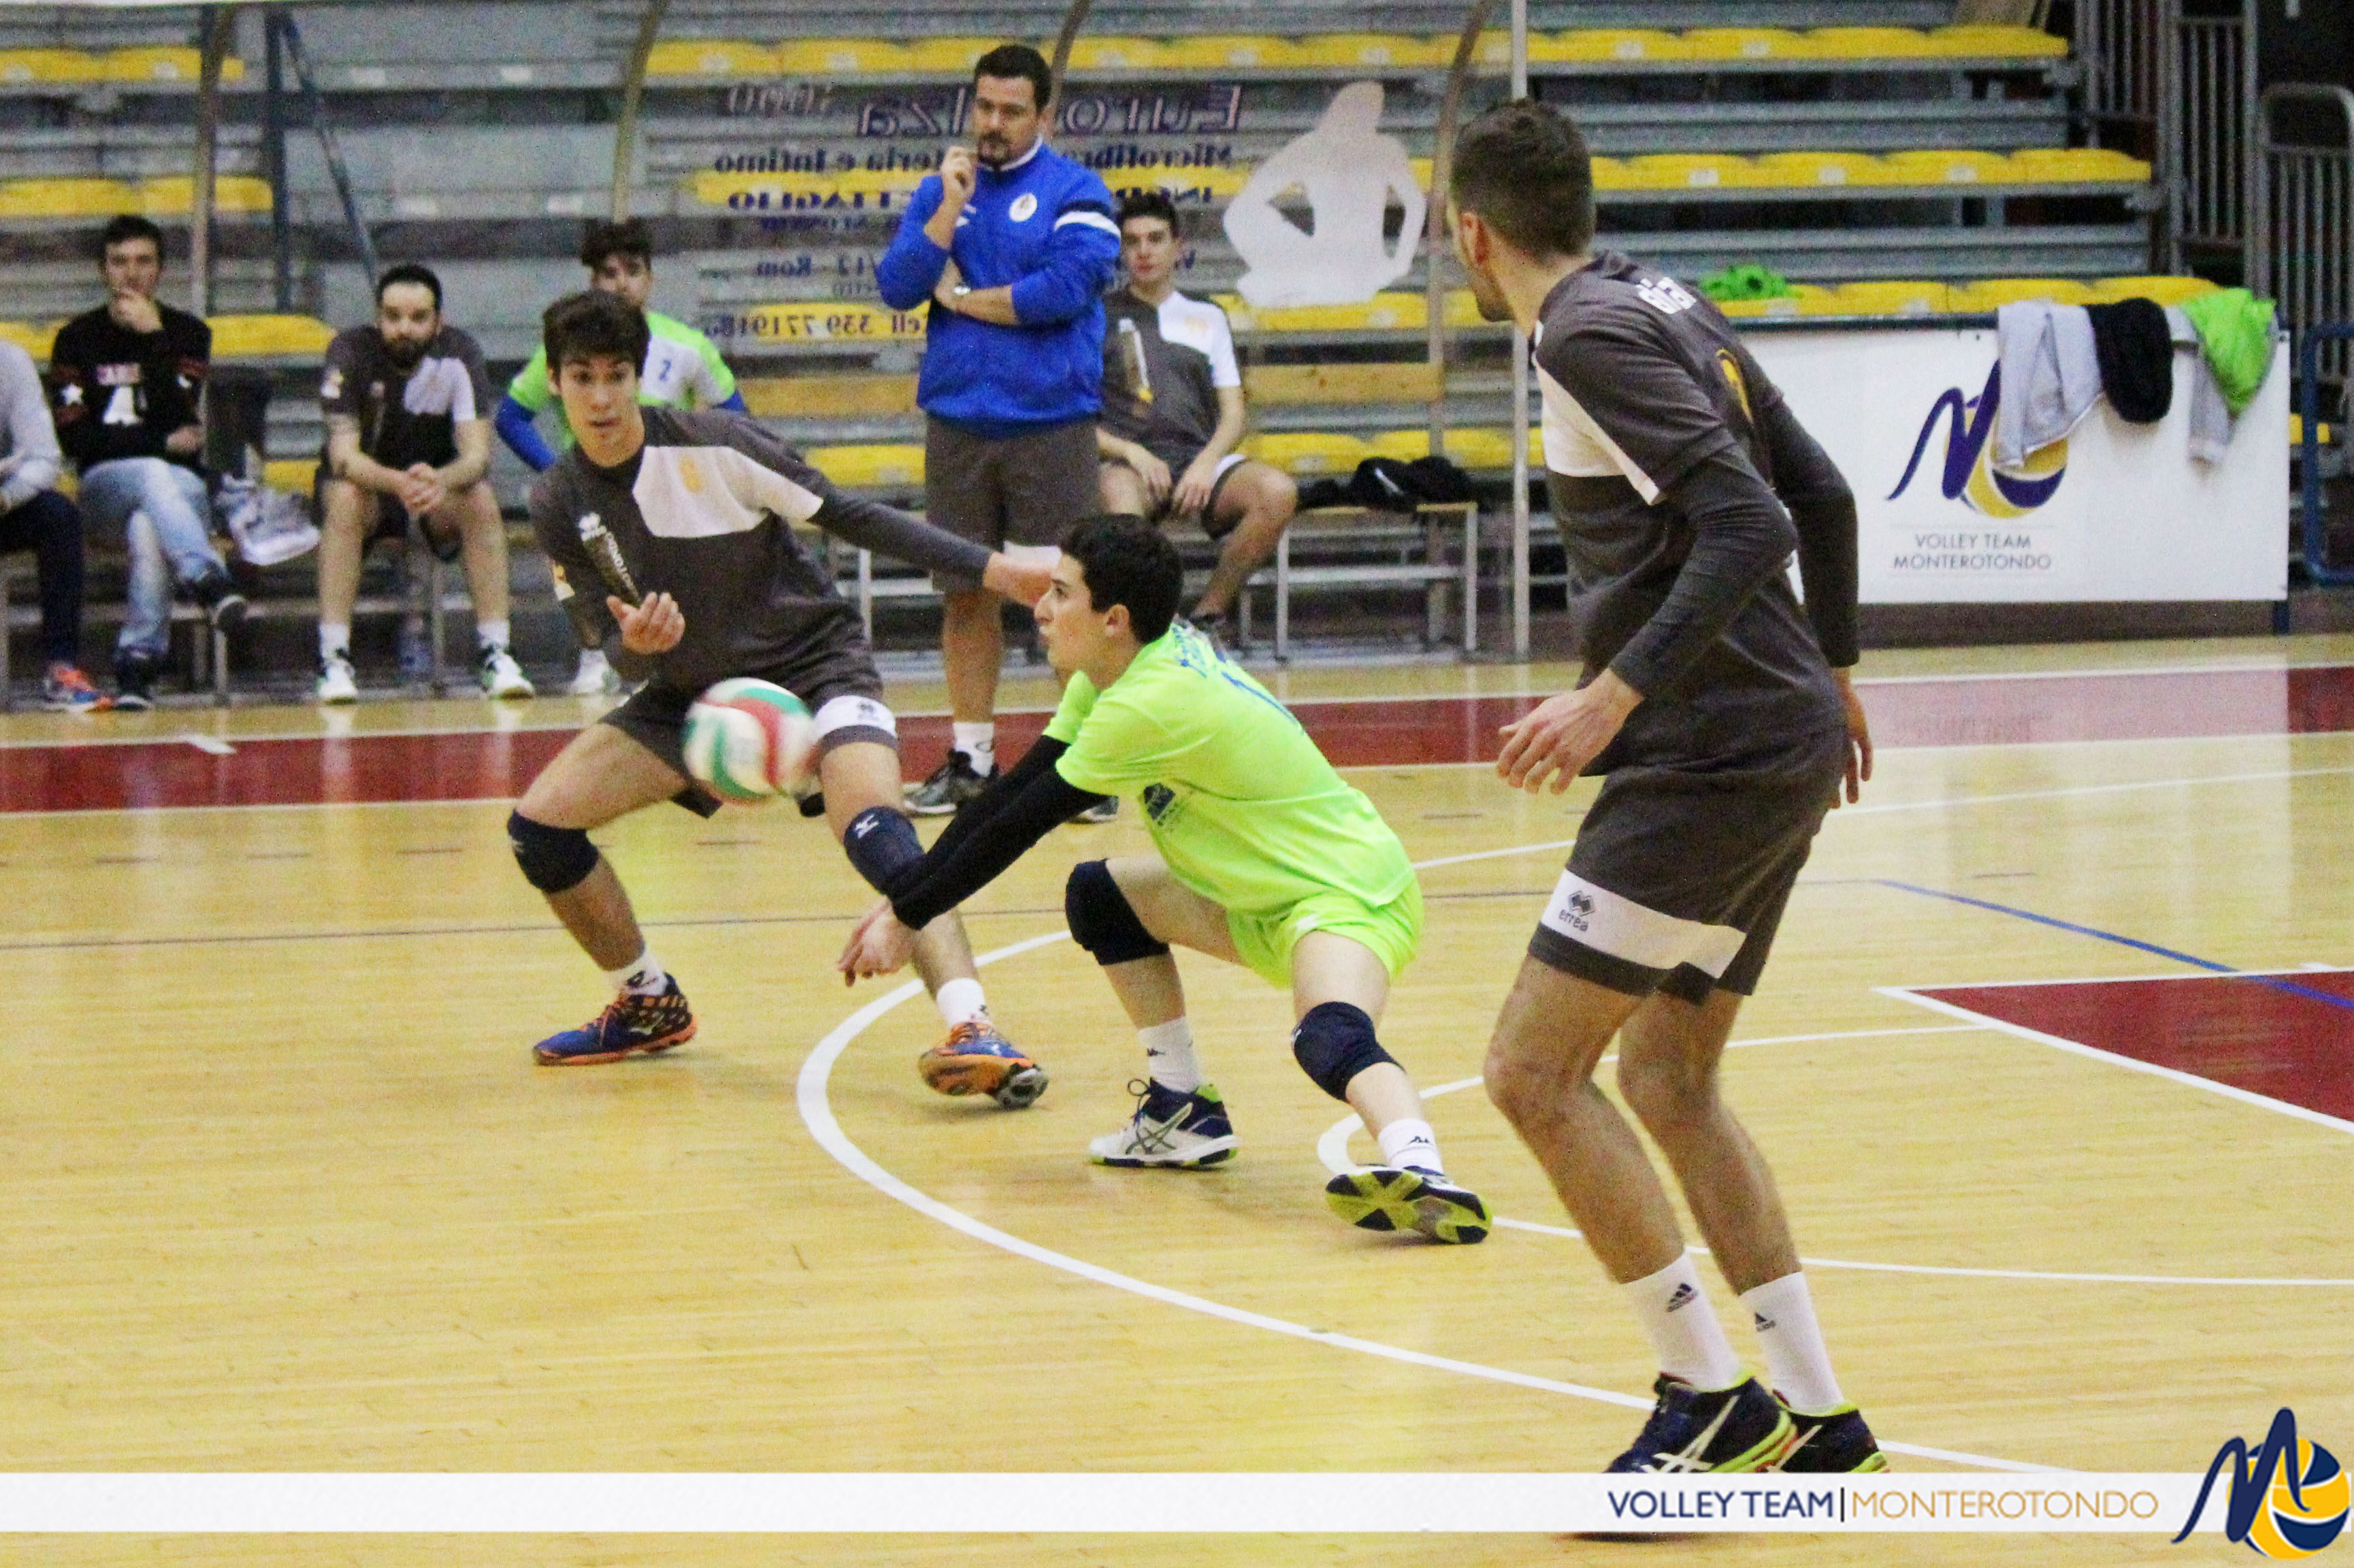 Serie D. Volley Team pronta alla battaglia contro Santa Monica